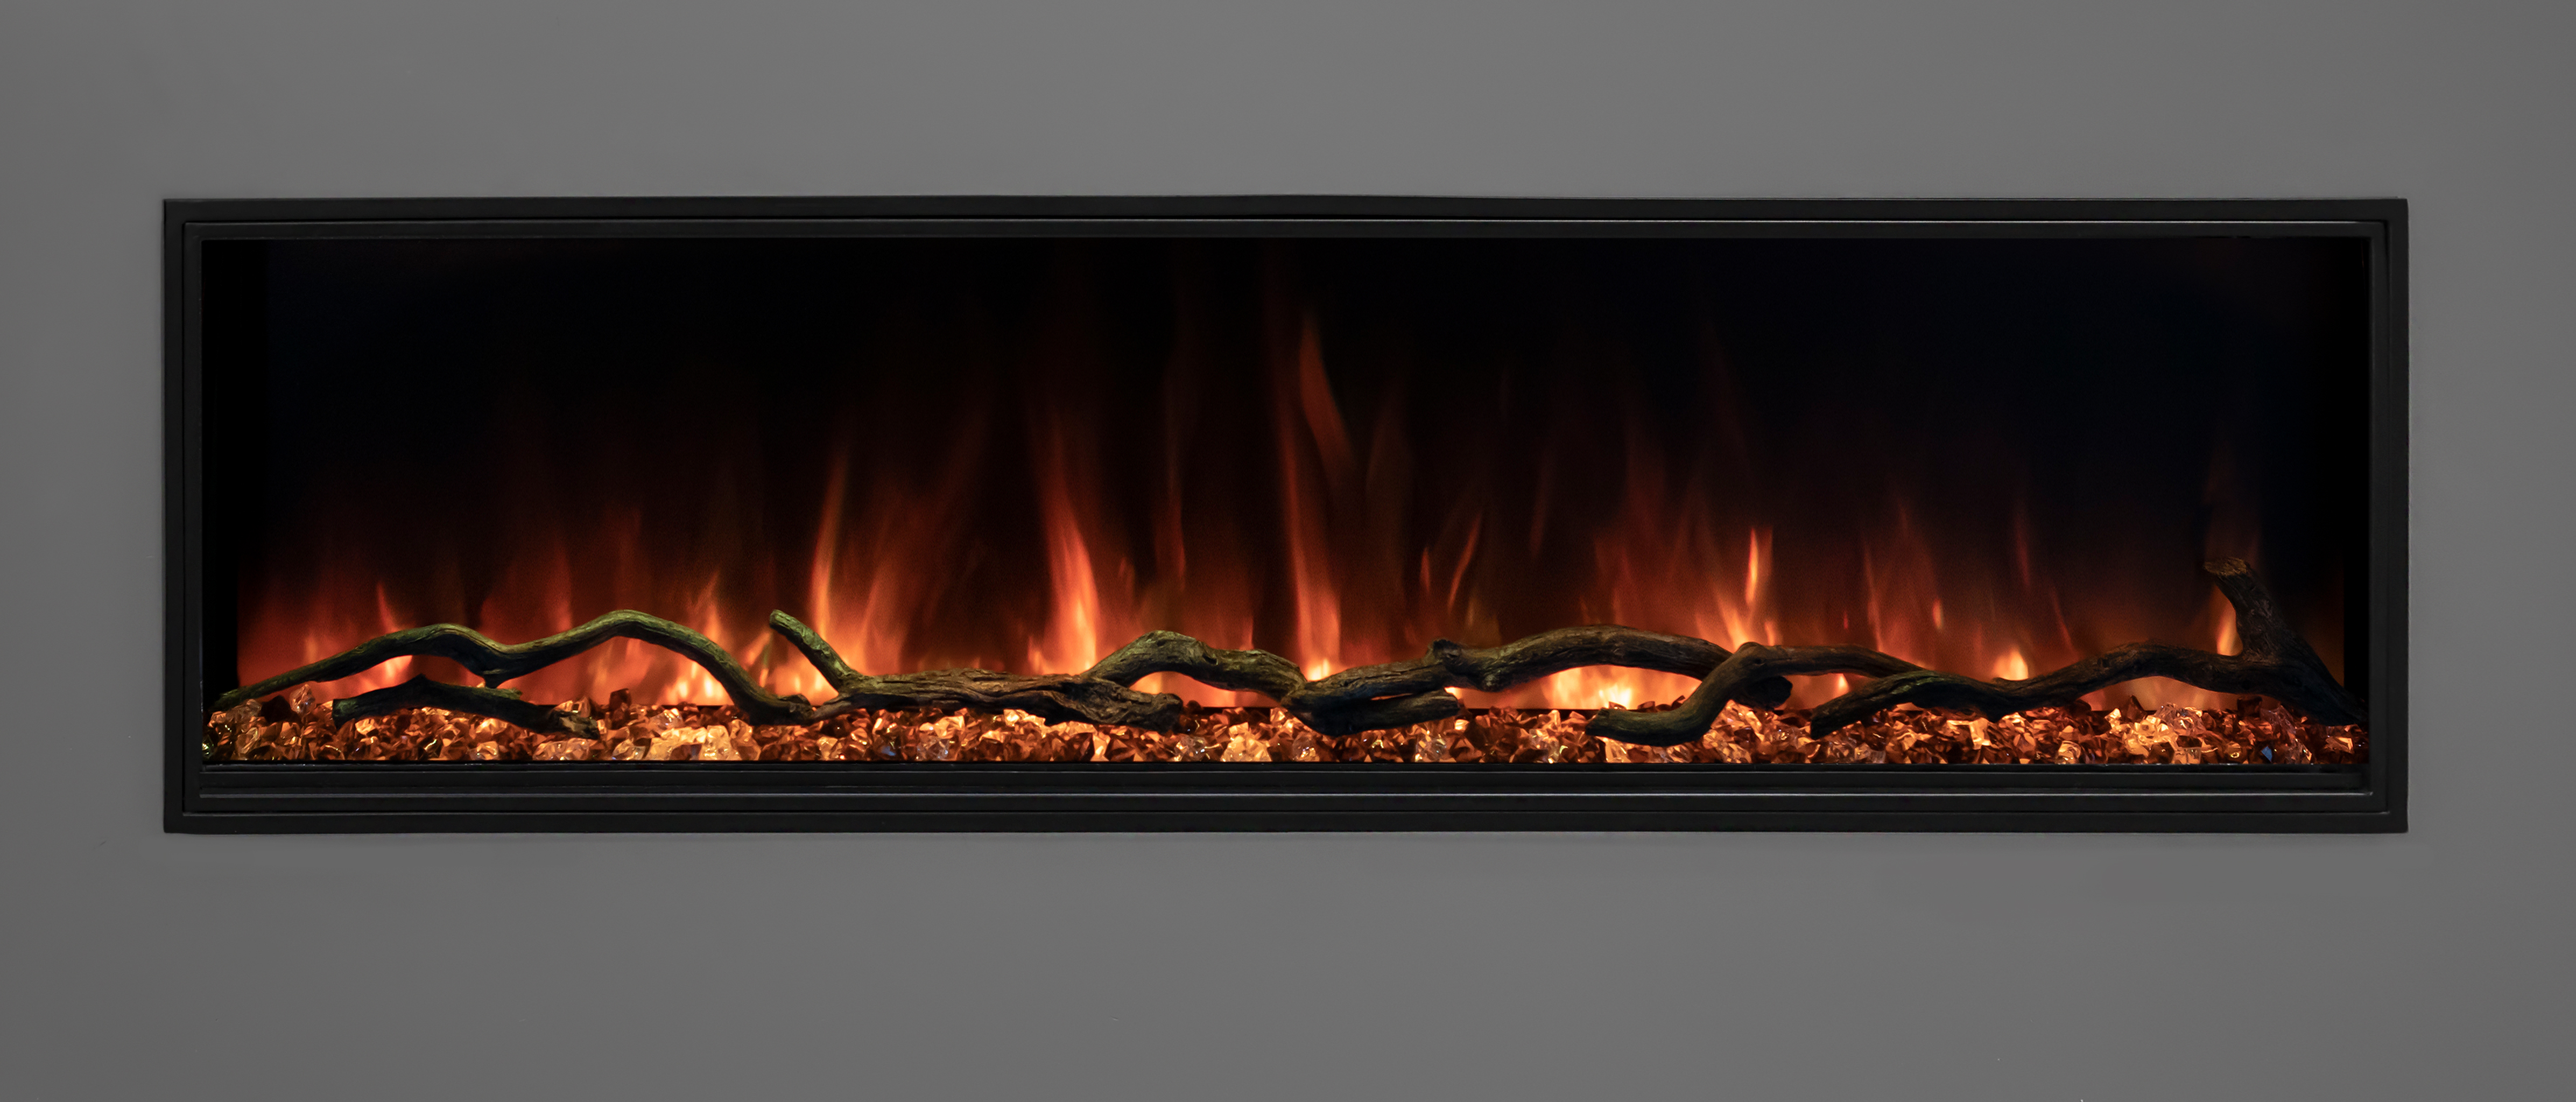 Modern Flames Landscape Pro Slim Series 56 Inch Electric Fireplace Lps 5614 My Slice Of Life